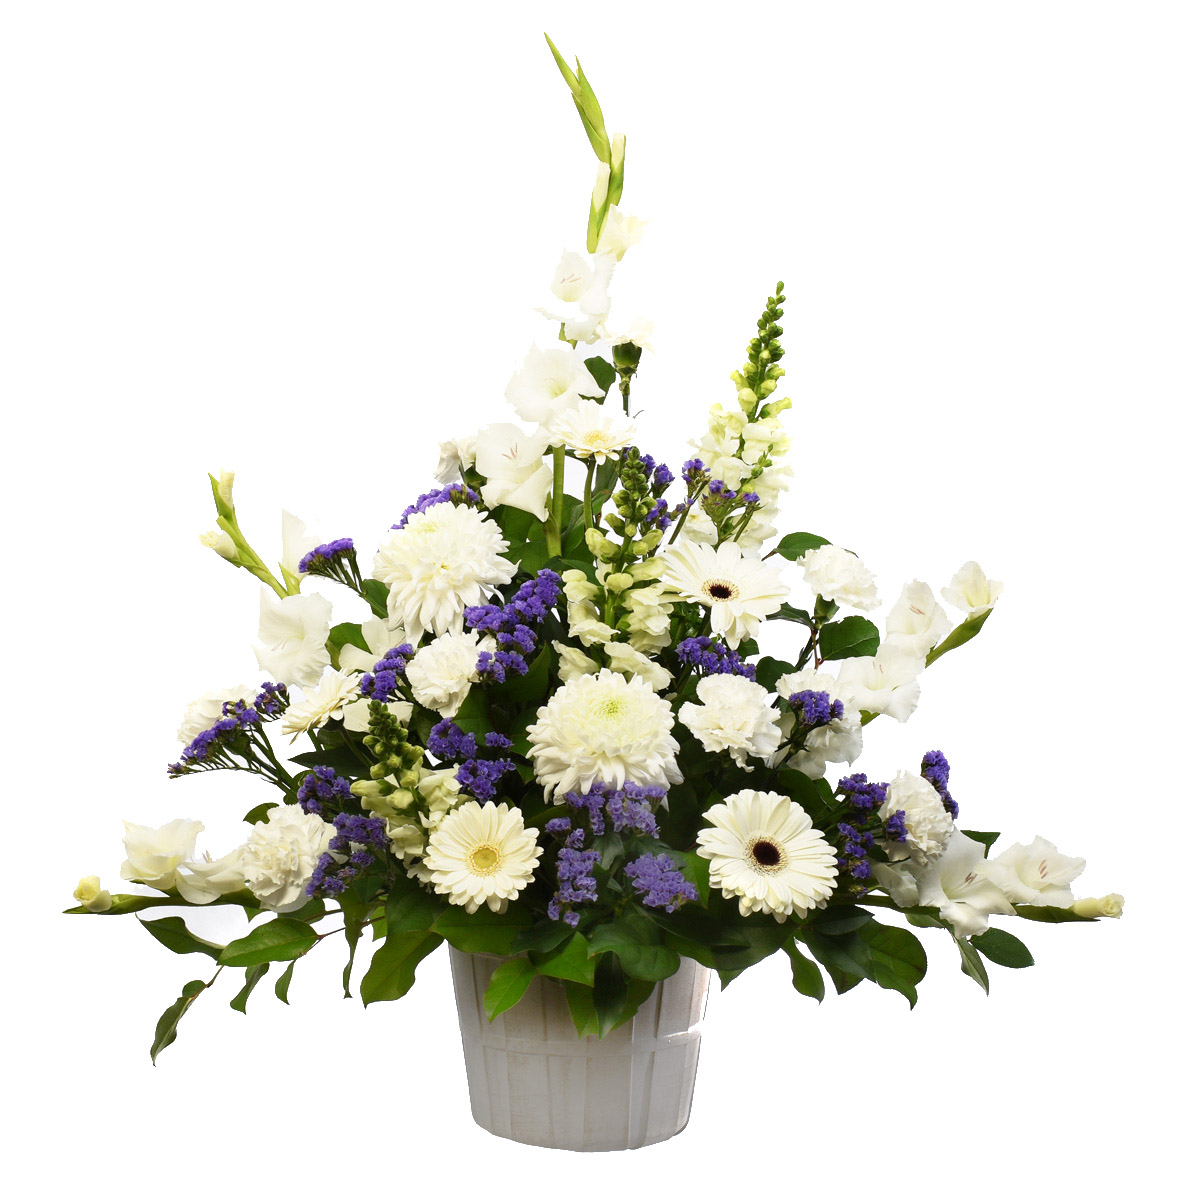 Best Florist for North Vancouver Delivery | Adele Rae Florist